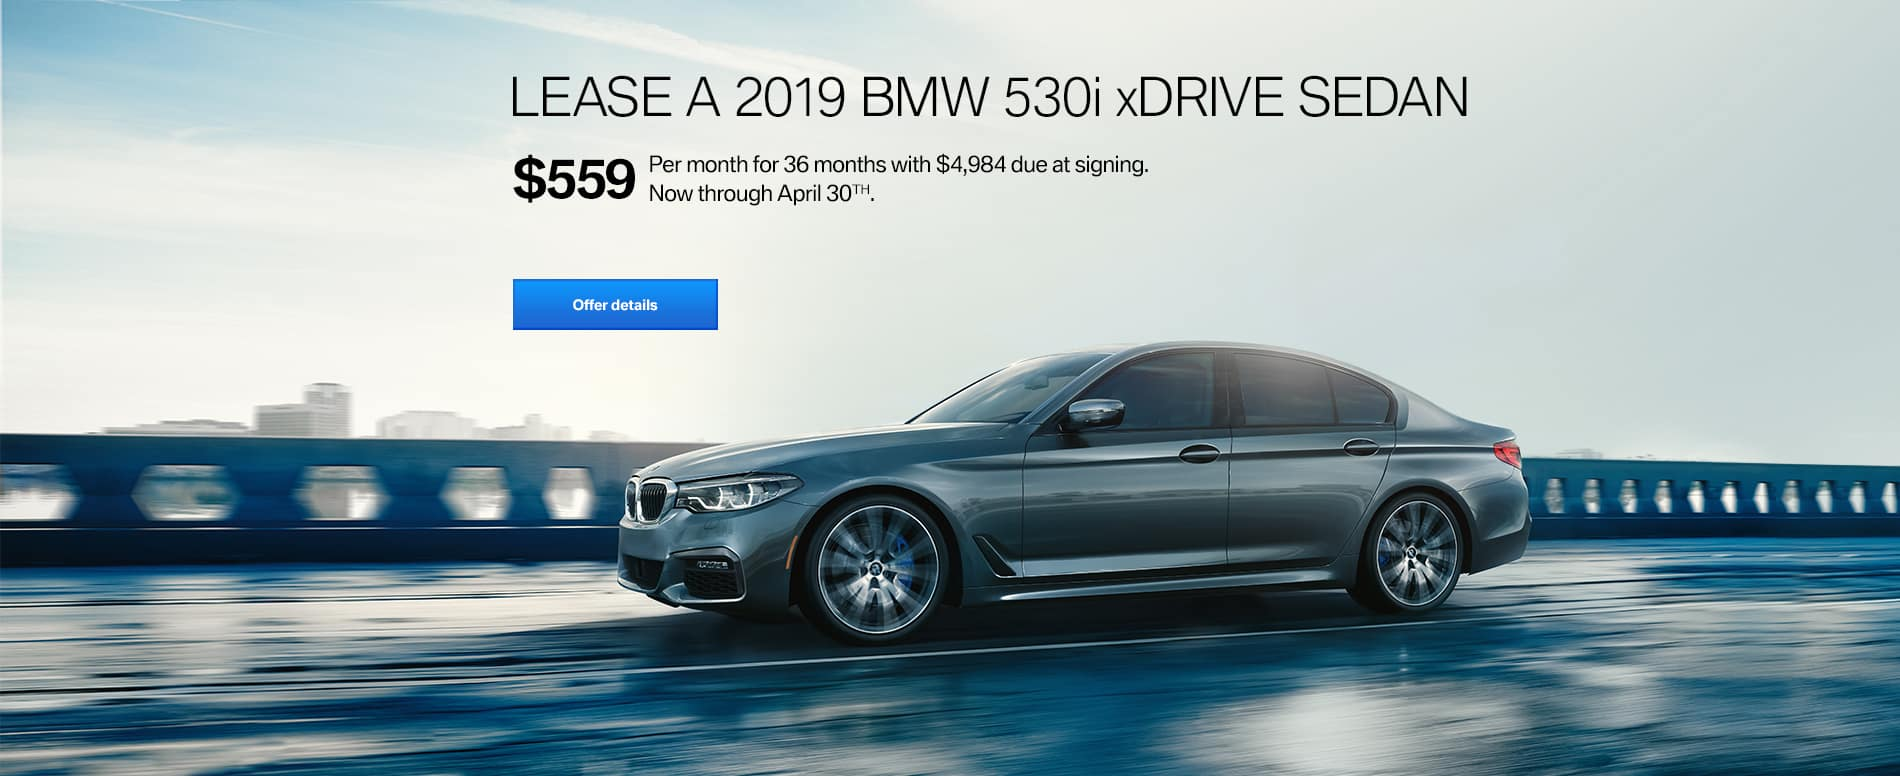 PUSH_2019_BMW_530i_xDrive_$559